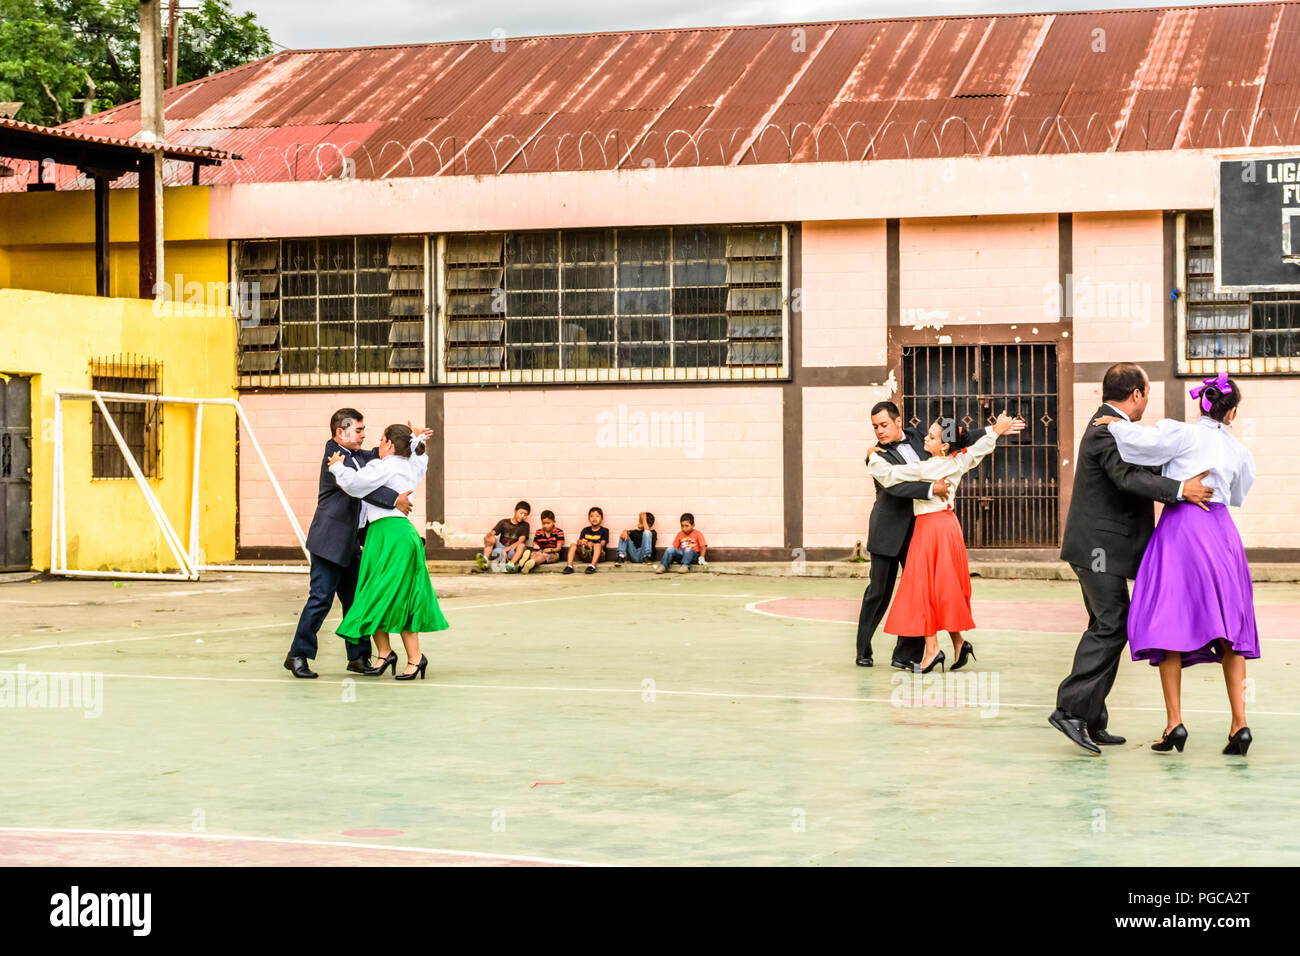 San Juan del Obispo, Guatemala -  August 3, 2018: Guatemalan folk dancers perform near UNESCO World Heritage Site of Antigua. - Stock Image